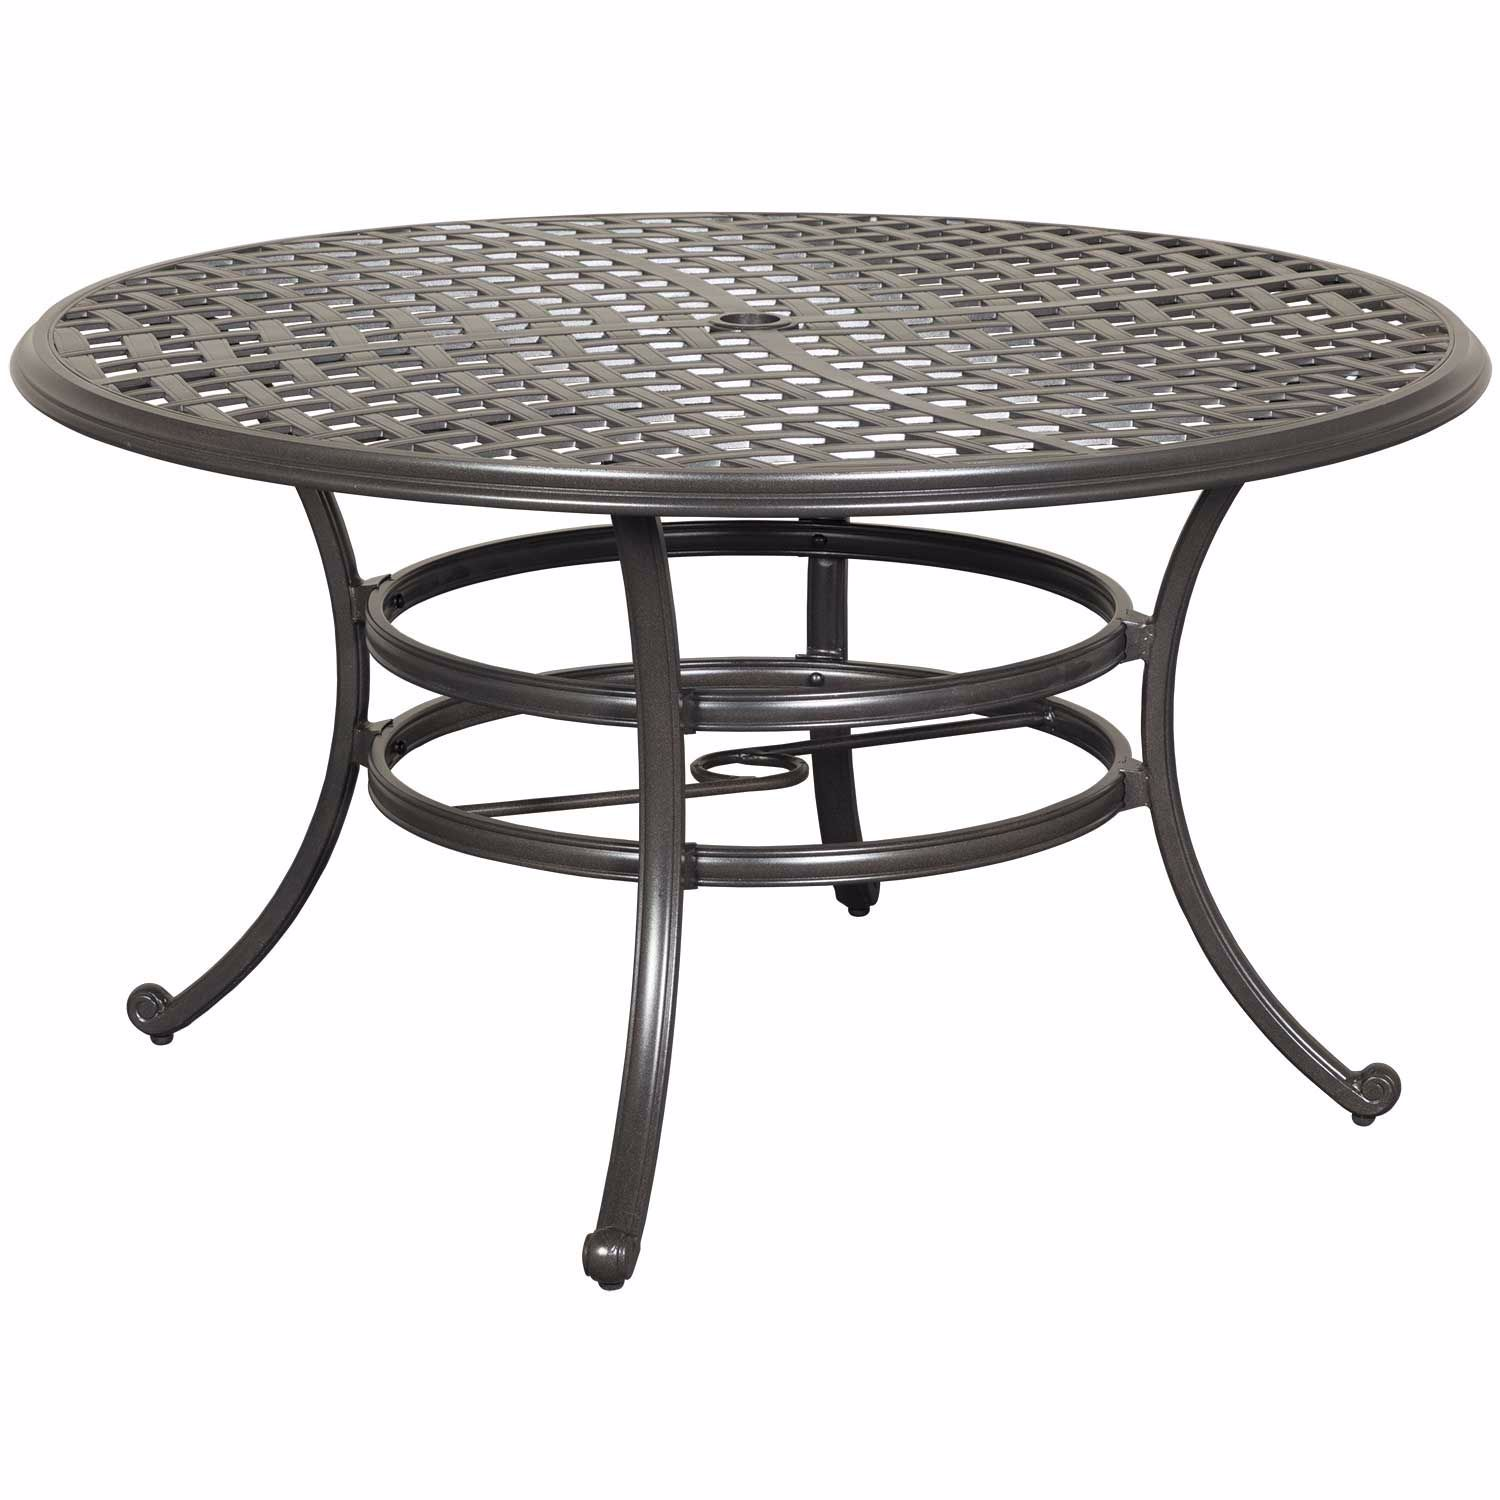 Halston 53 Round Patio Table Ld7289a 53 146 1 World Source